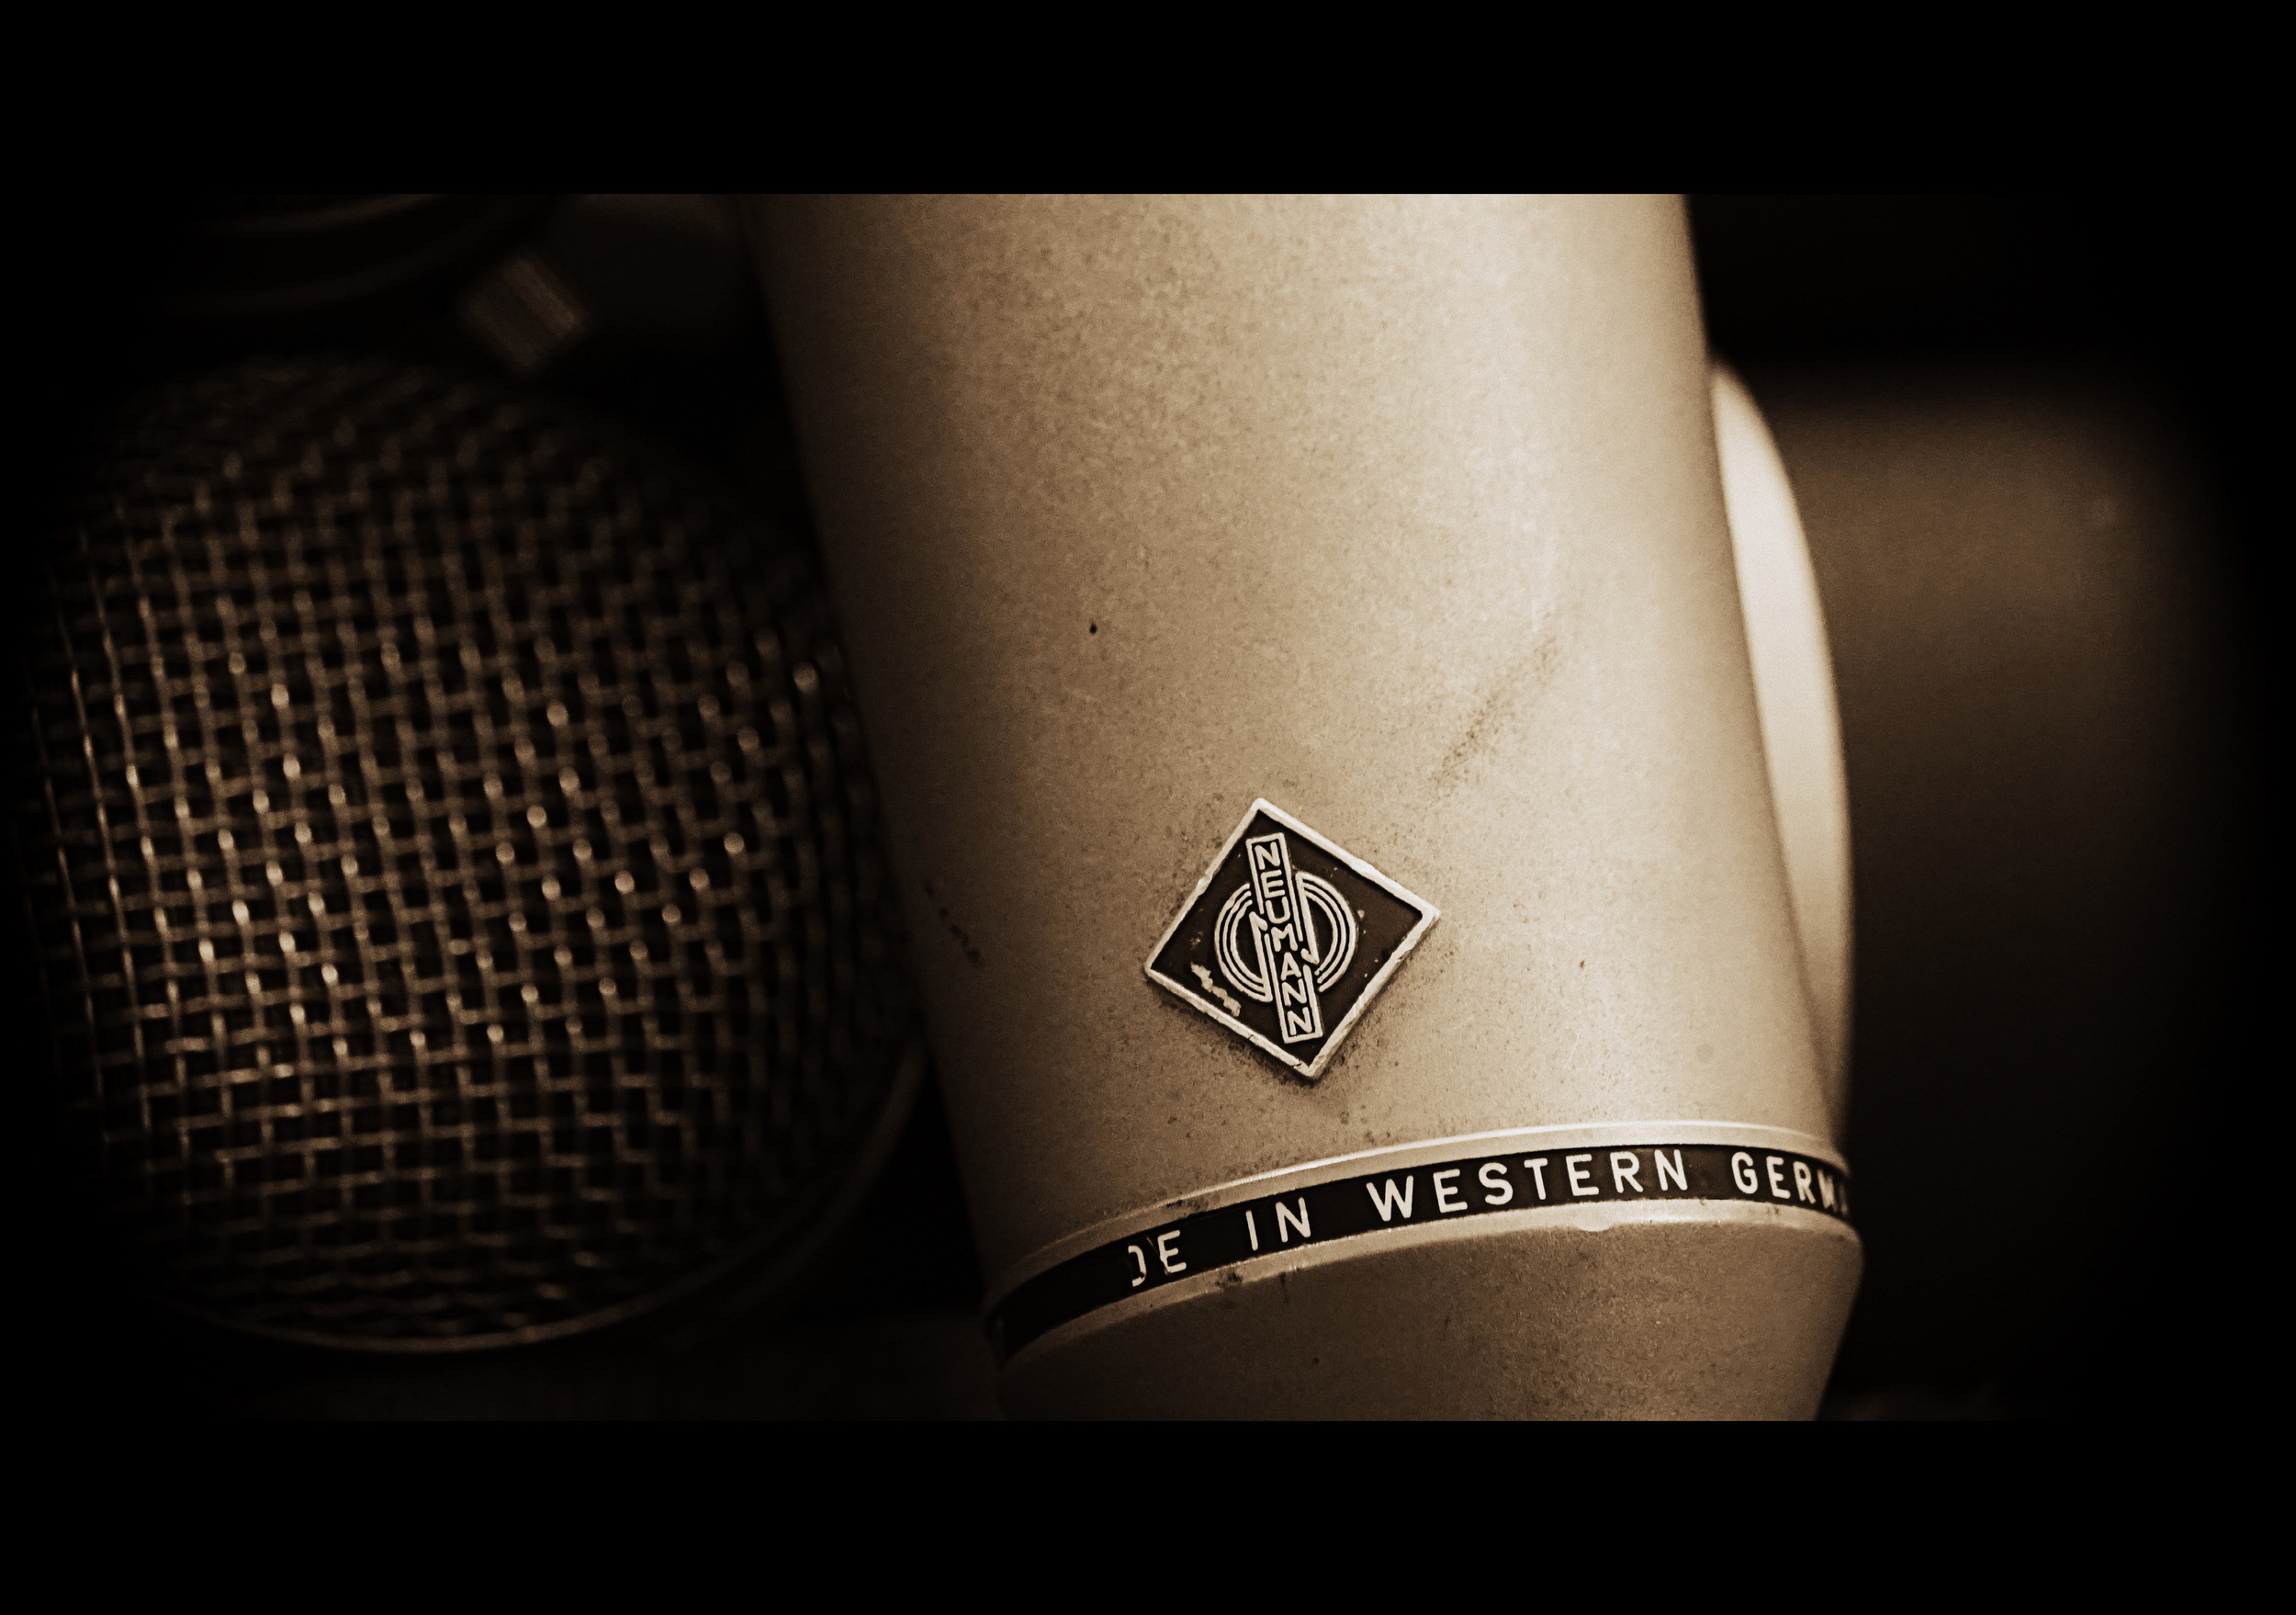 Photo for Neumann Microphones at D'Herde East. Photo by Ryan D'Herde